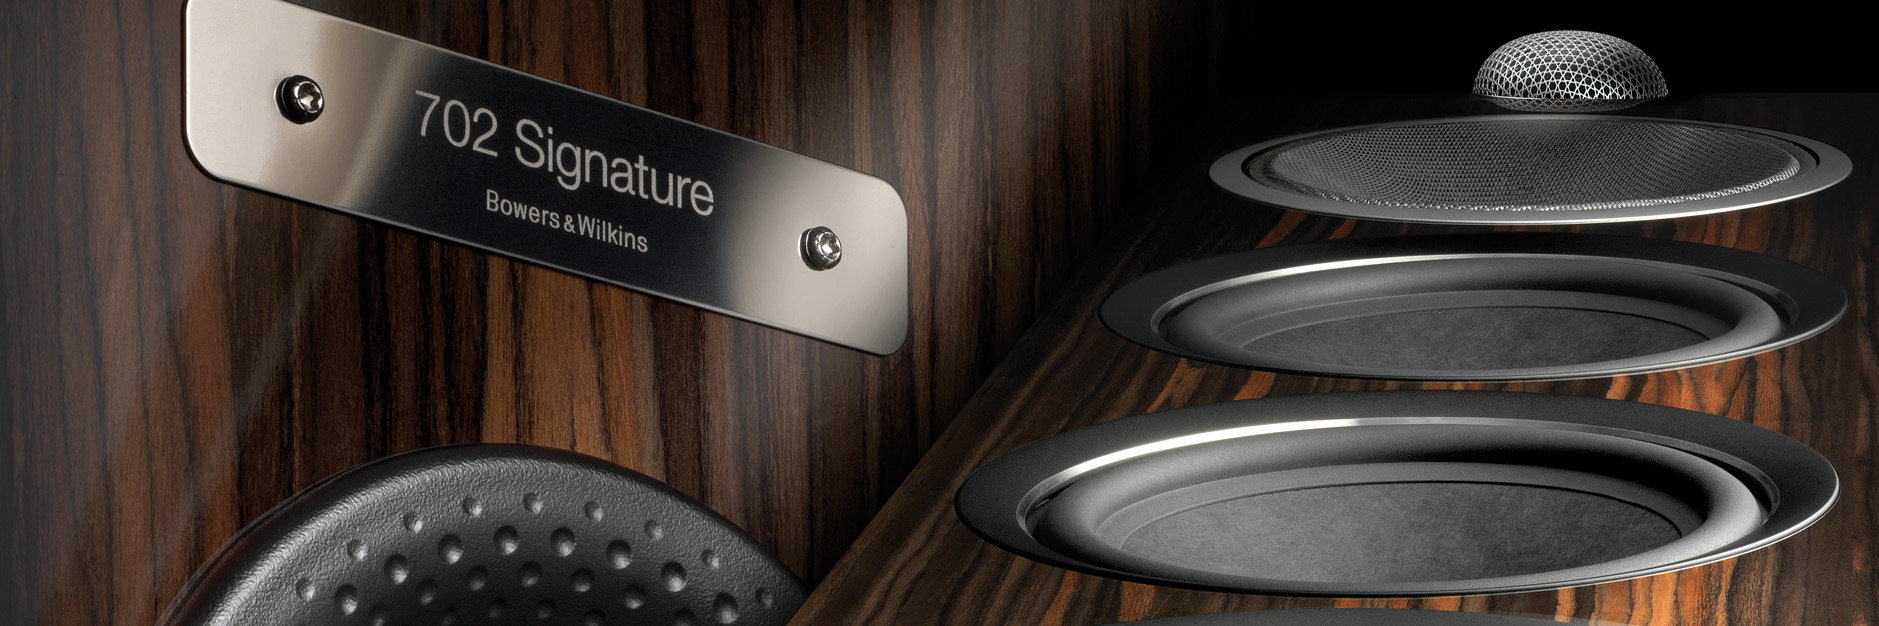 Bowers & Wilkins Signature 702 S2